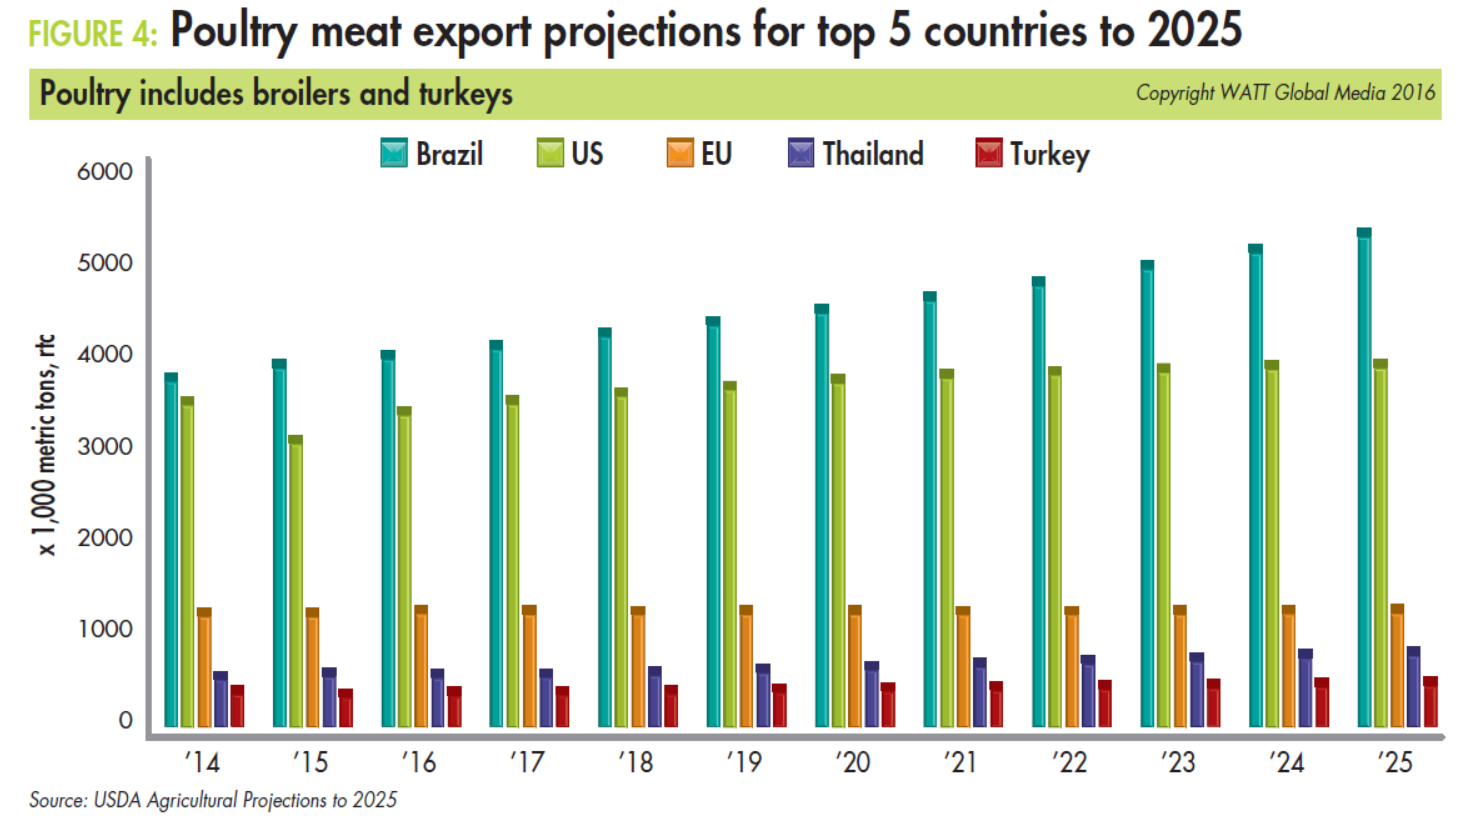 Poultry-meat-export-projections-for-top-5-countries-to-2025